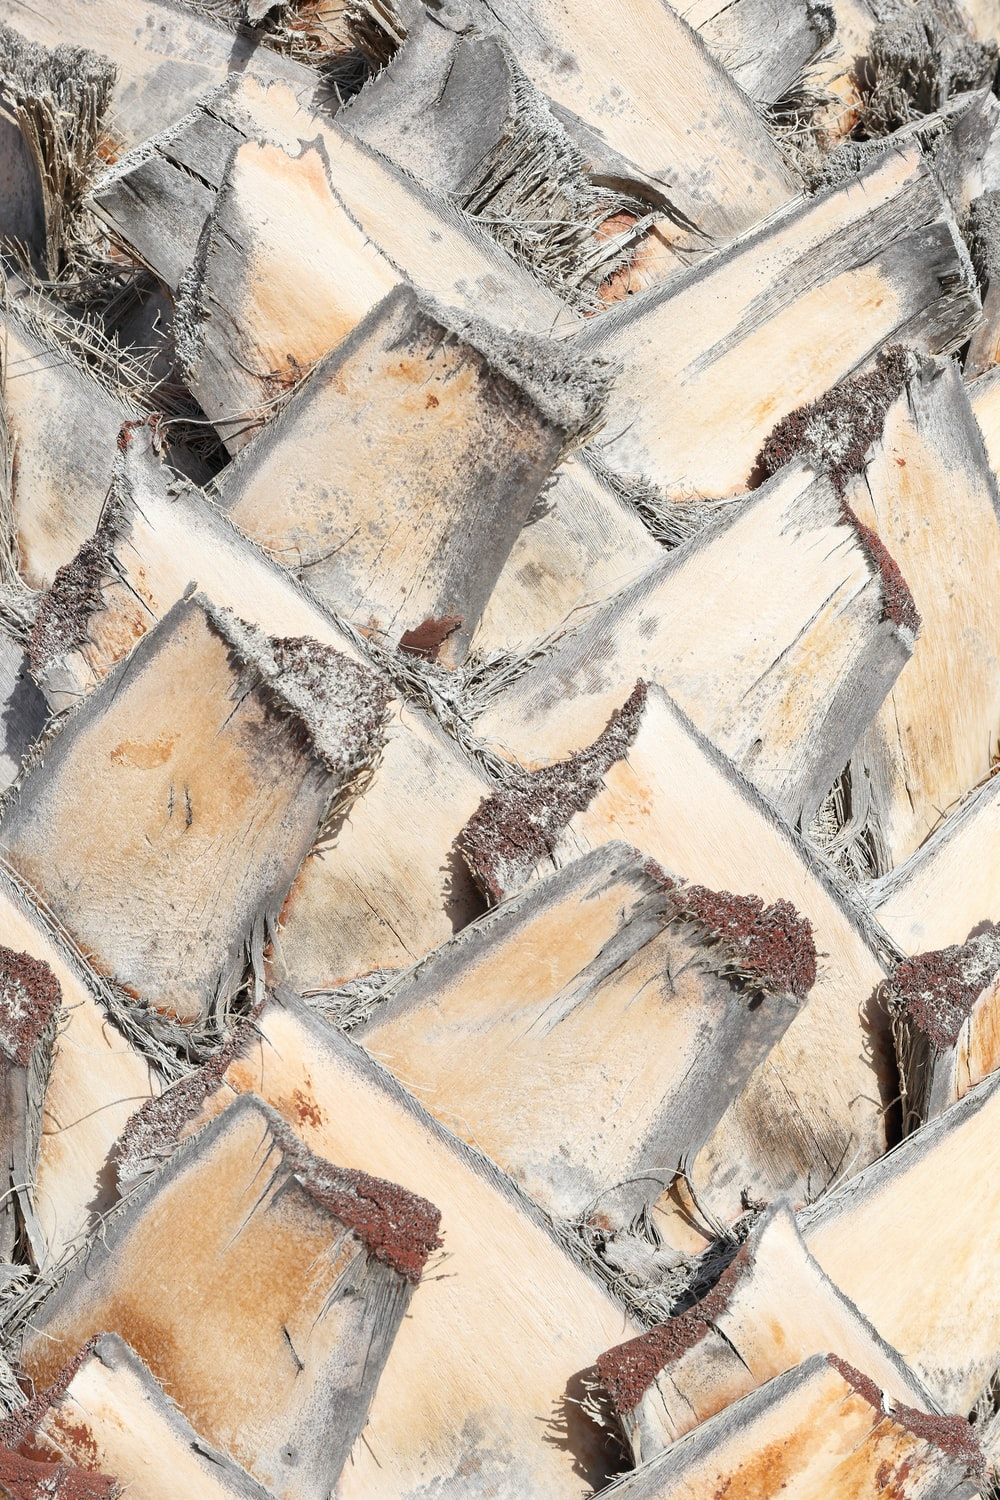 painting of a gray tree stump